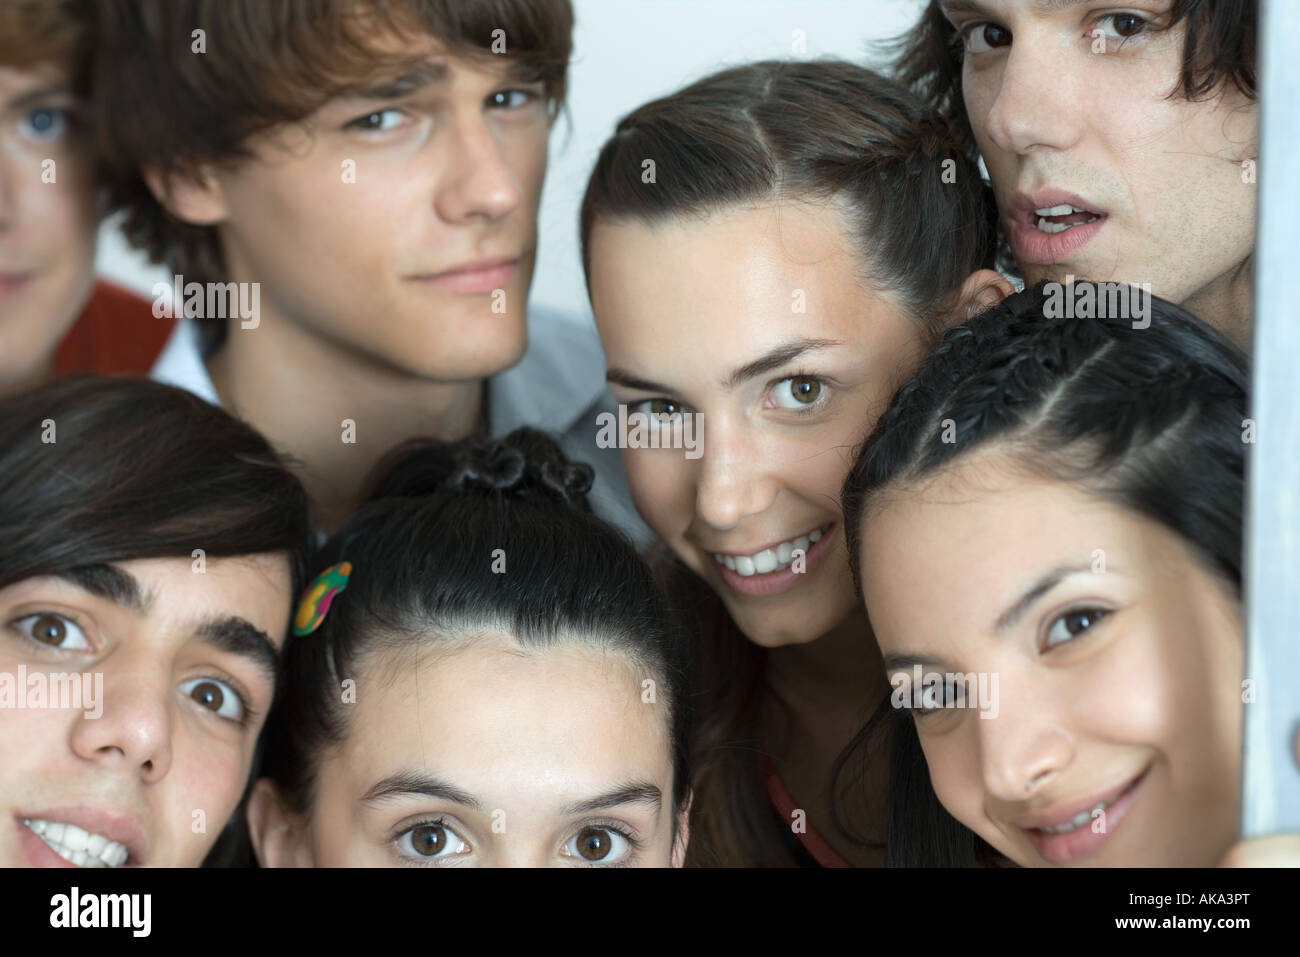 Group of young friends posing for photo, looking at camera, cropped, portrait - Stock Image